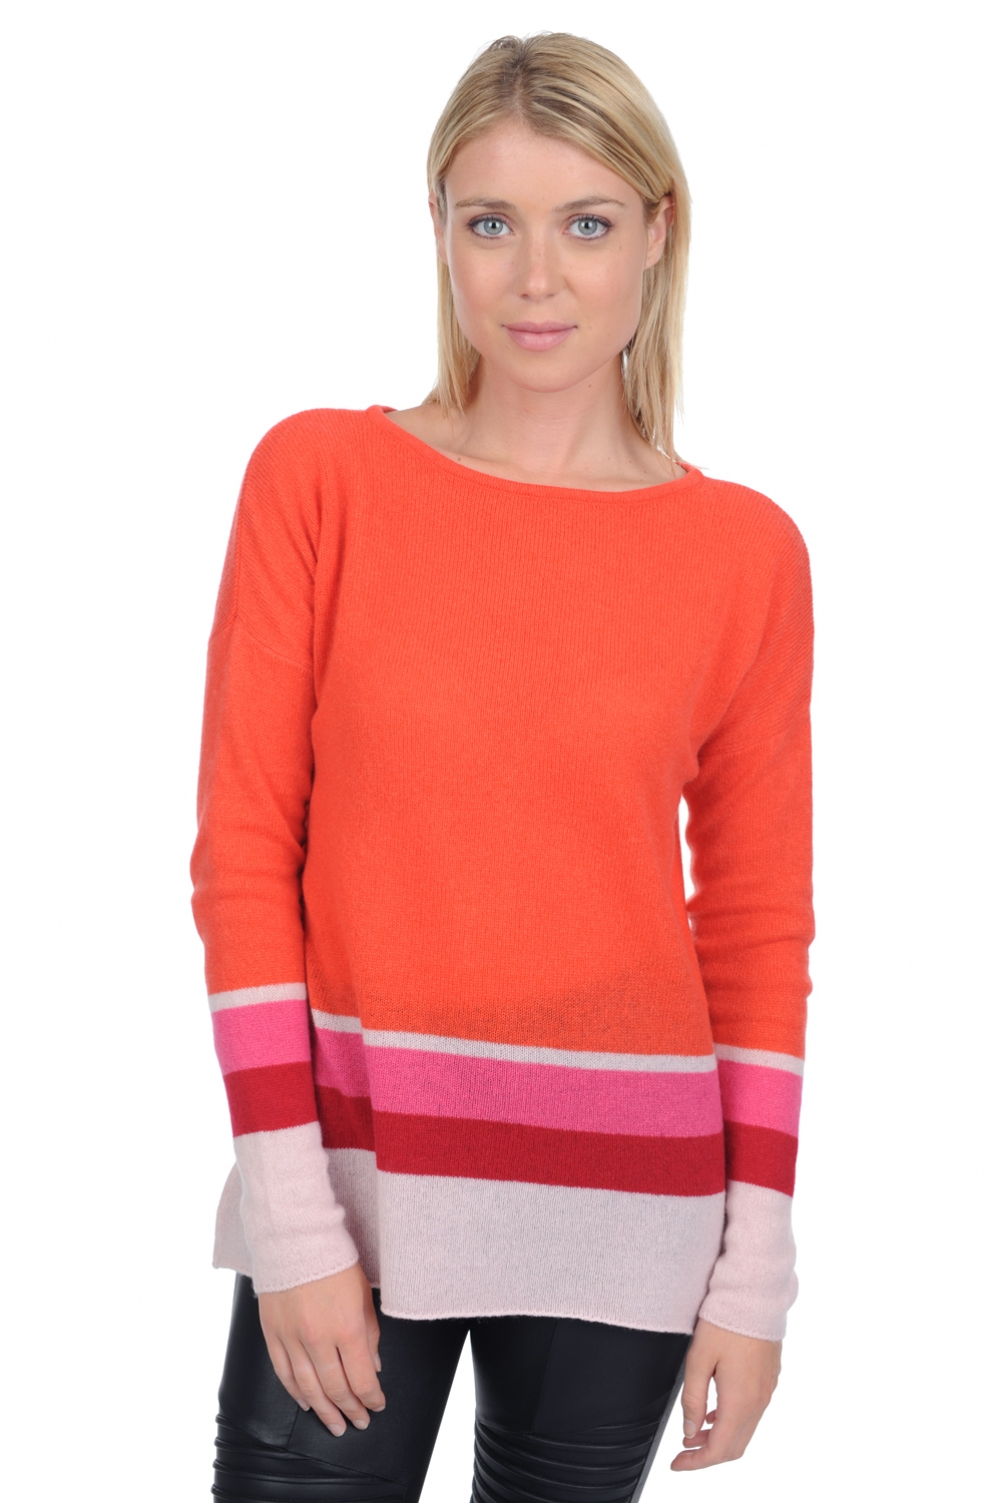 Cachemire pull femme col rond lysa corail lumineux xs